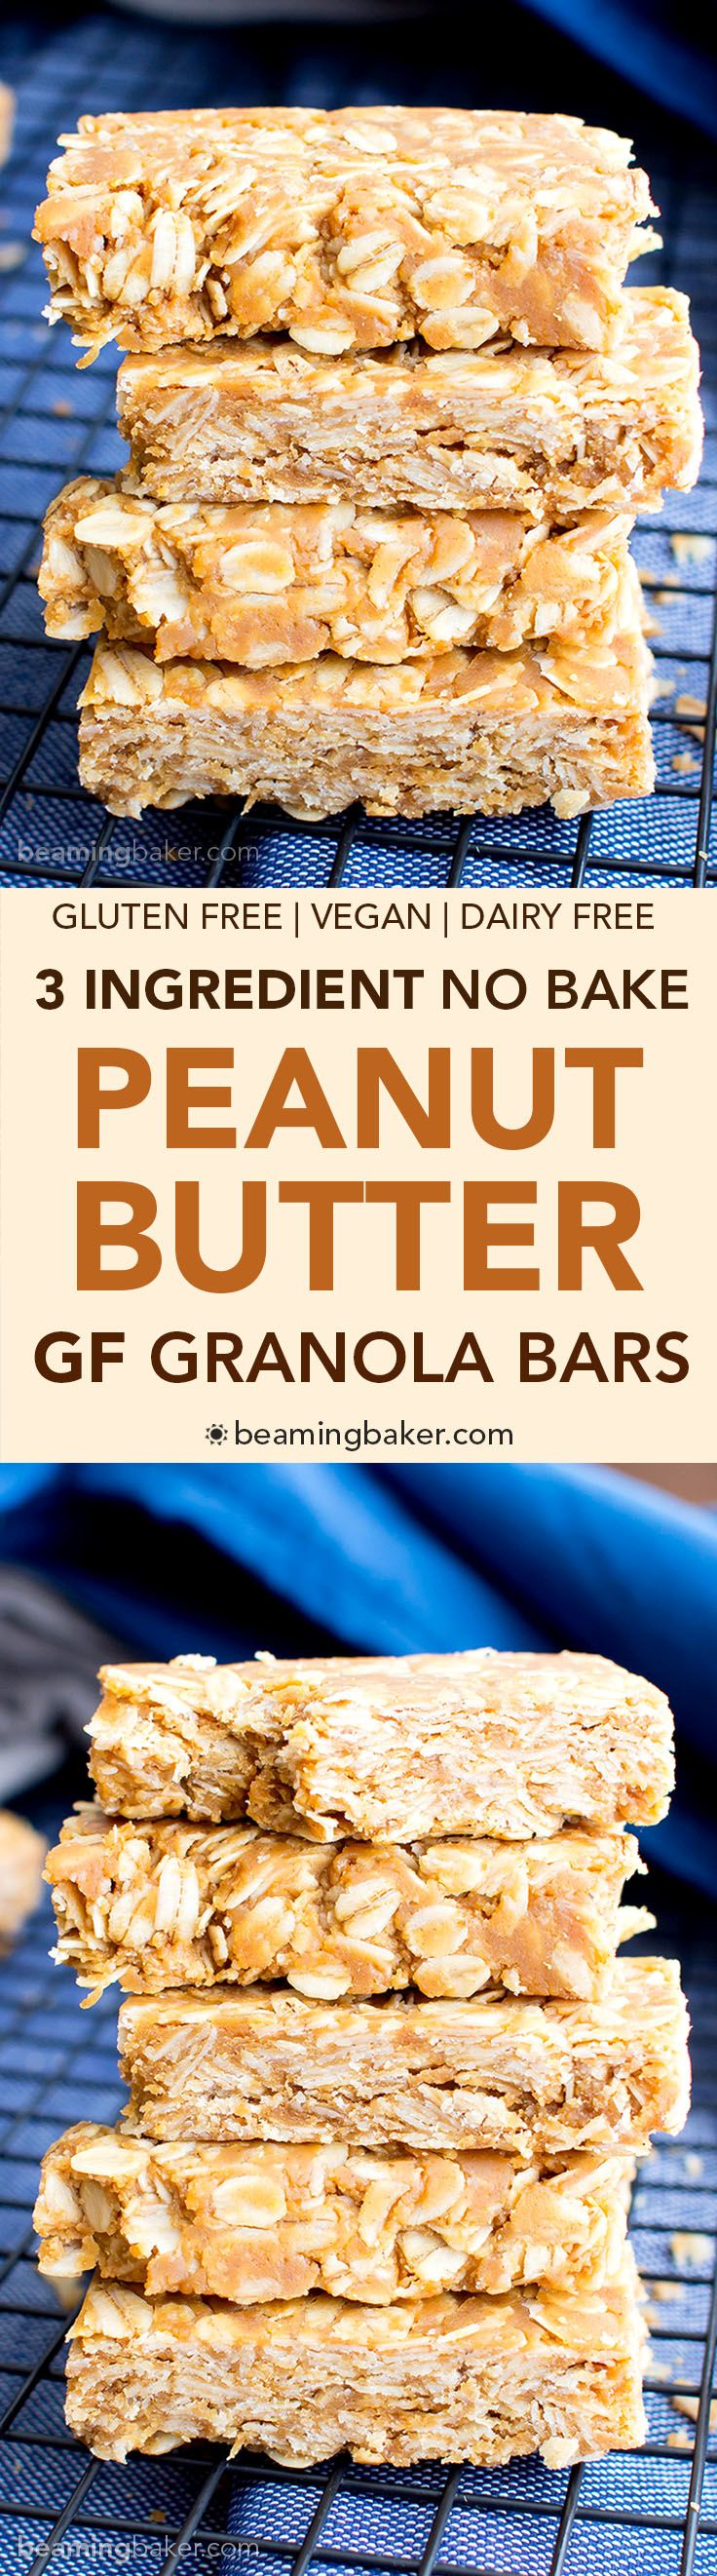 3 Ingredient Vegan No Bake Gluten Free Peanut Butter Granola Bars | Beaming Baker